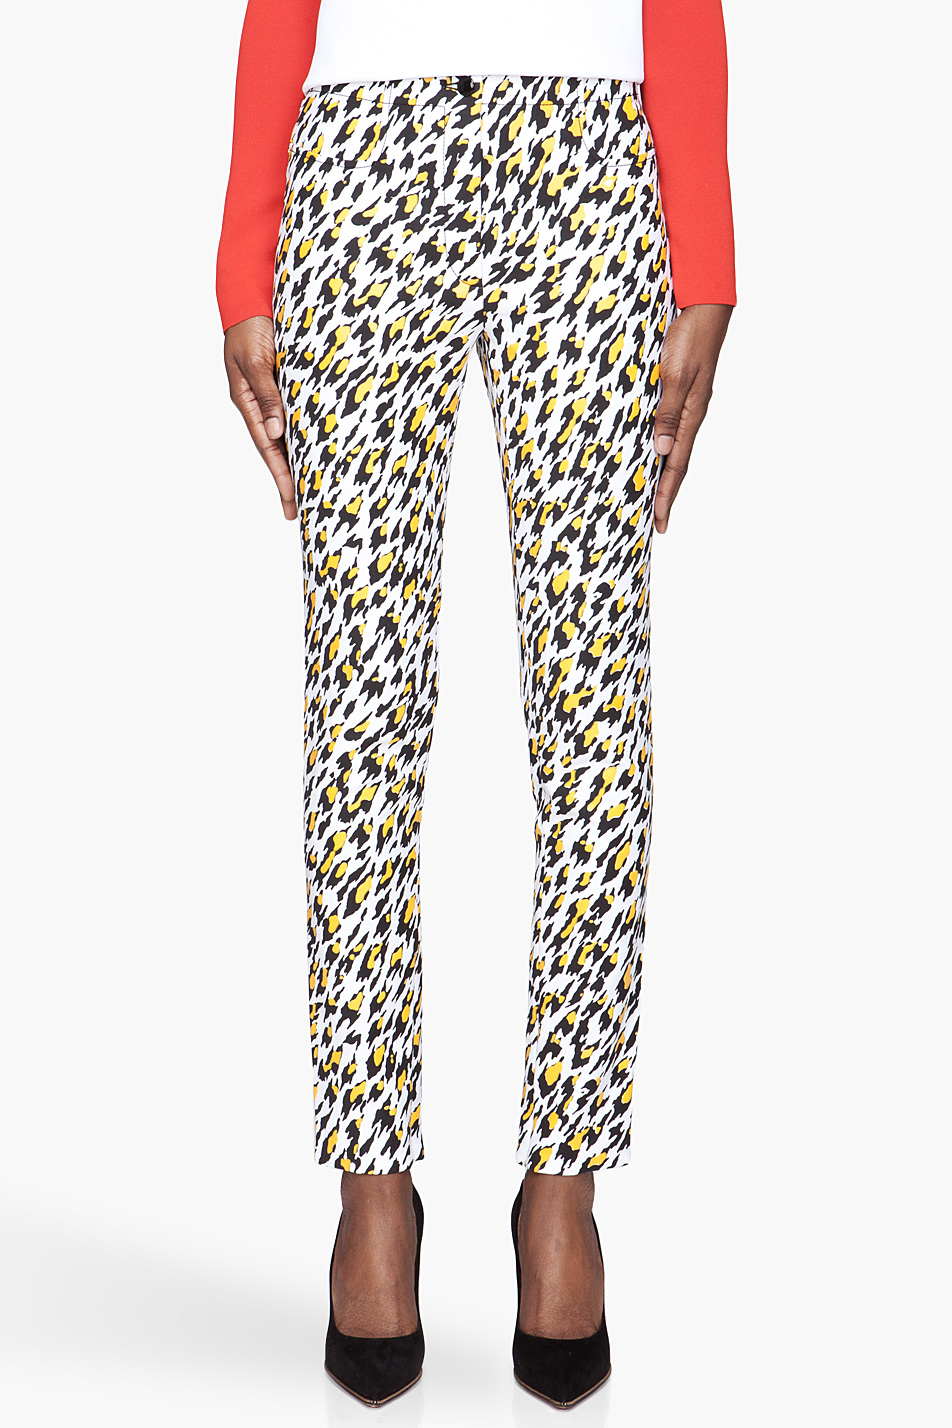 mugler white leopard print applique trousers